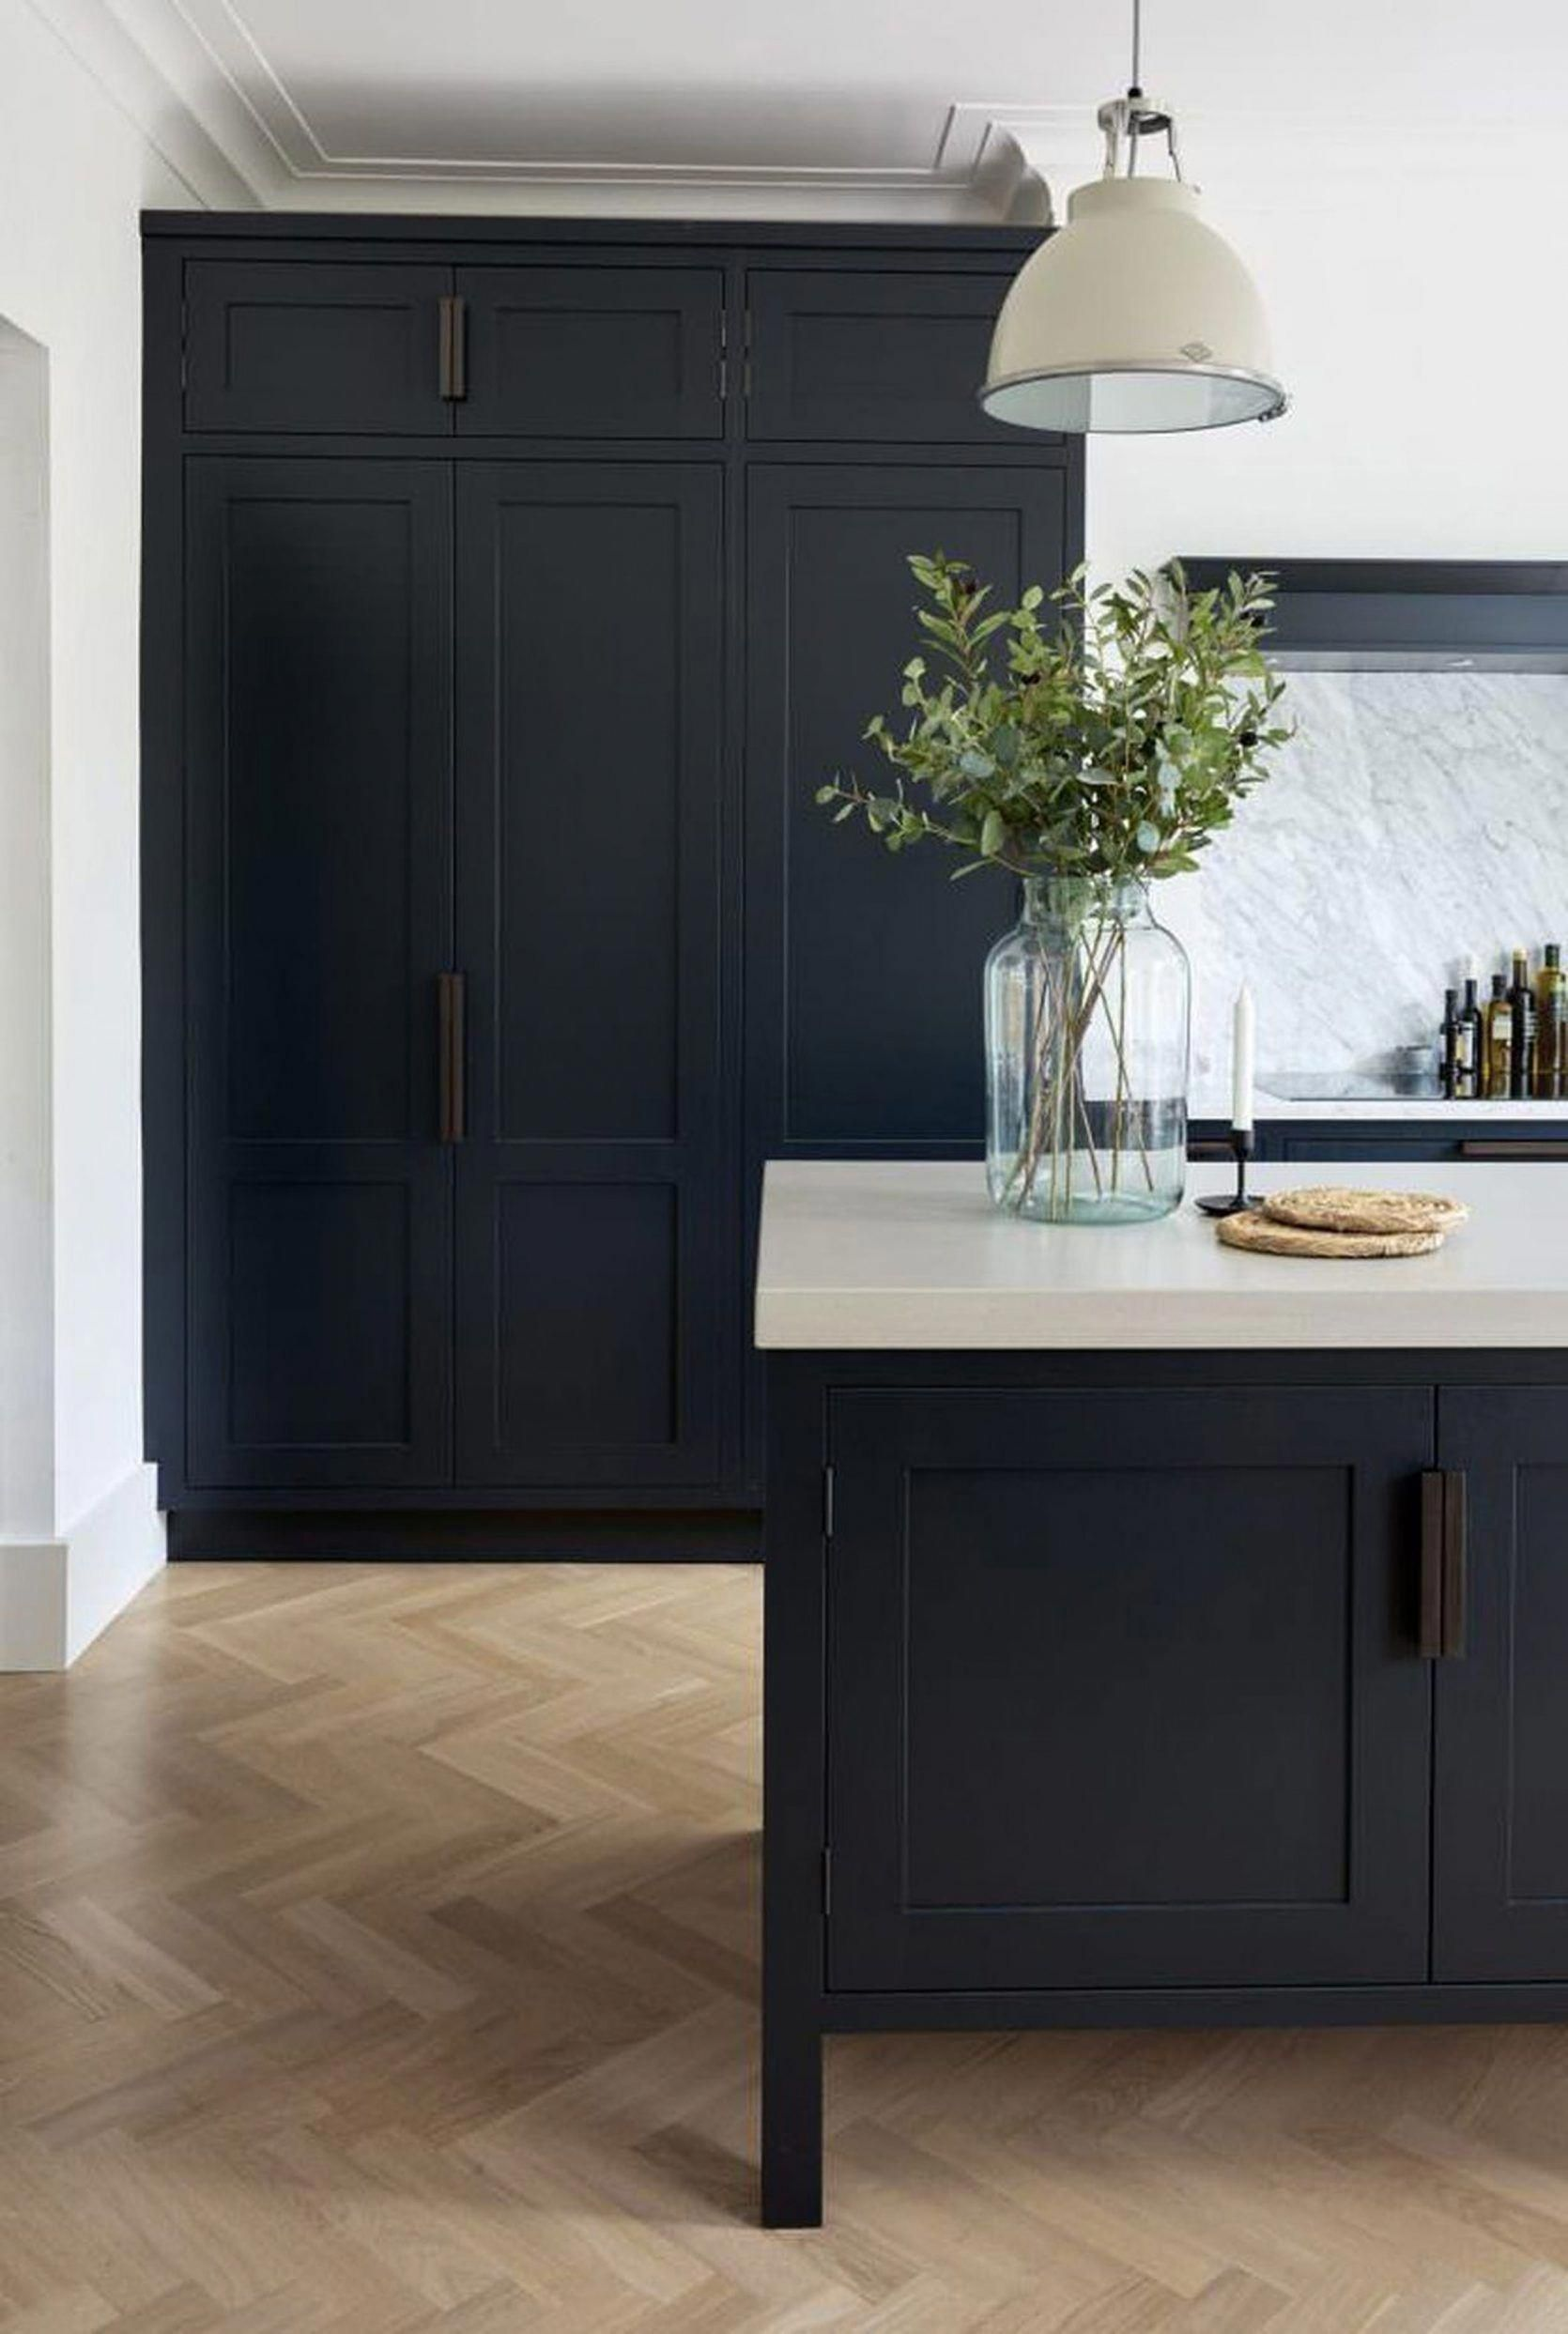 30 Layouts Perfect for Your Small Kitchen area